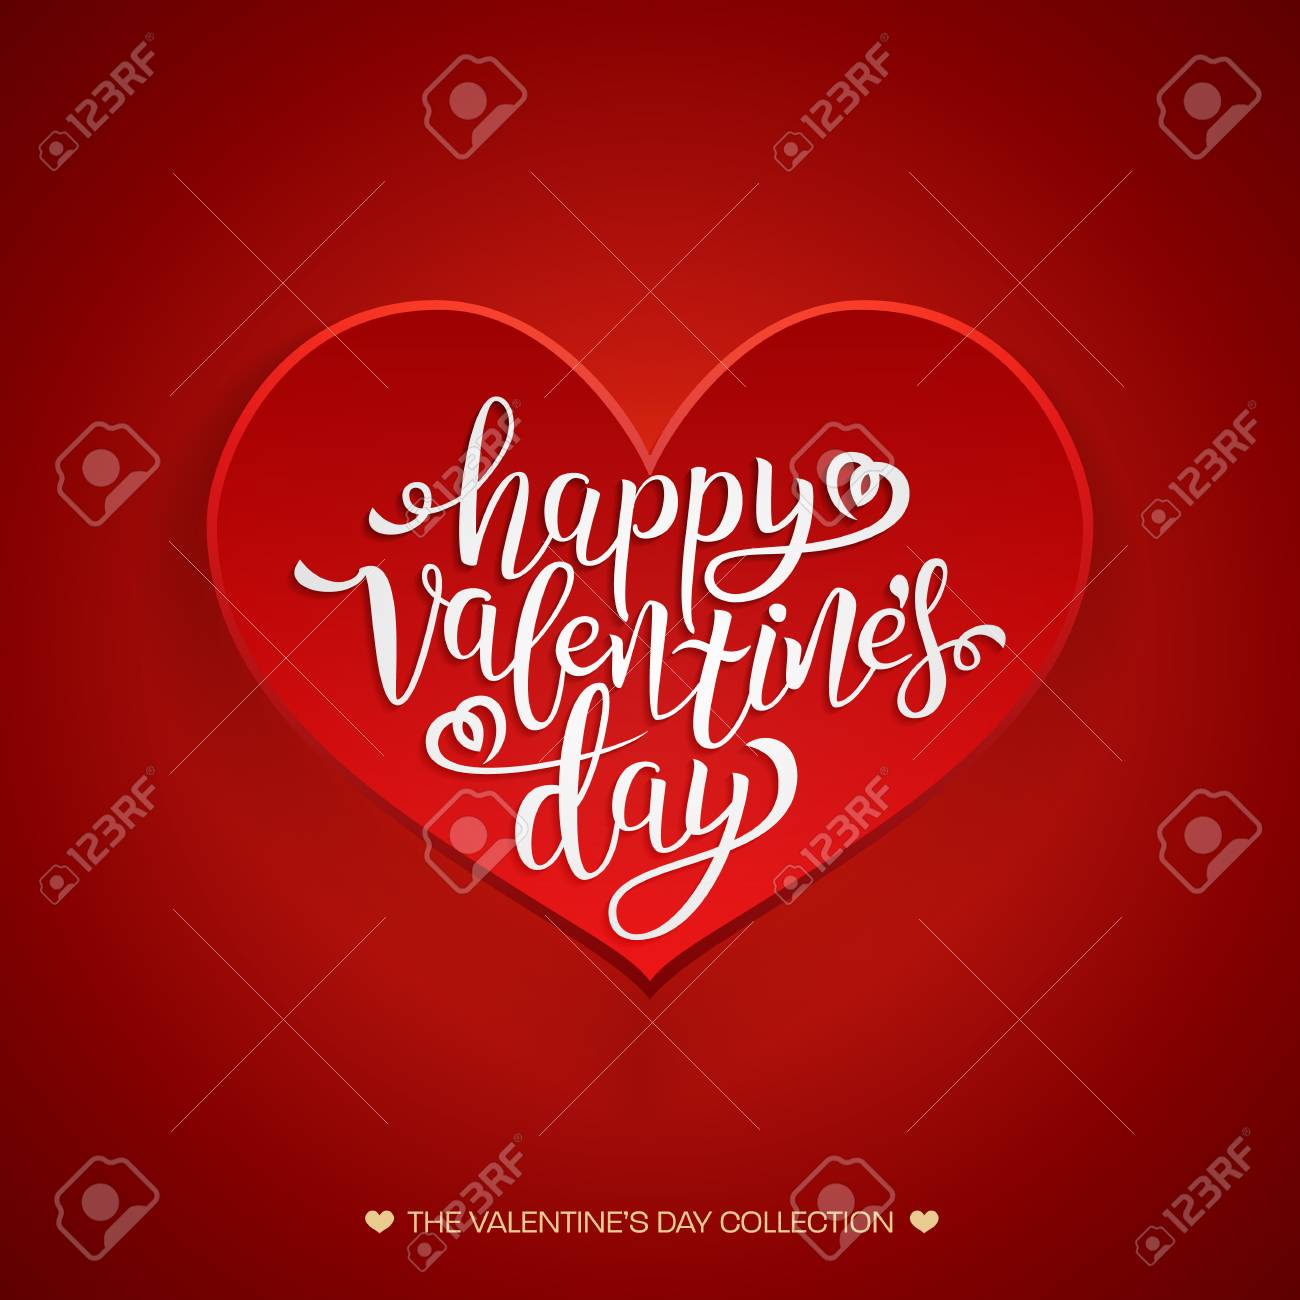 Beautiful valentines card happy valentines day hand drawing beautiful valentines card happy valentines day hand drawing vector lettering design red greeting card kristyandbryce Images